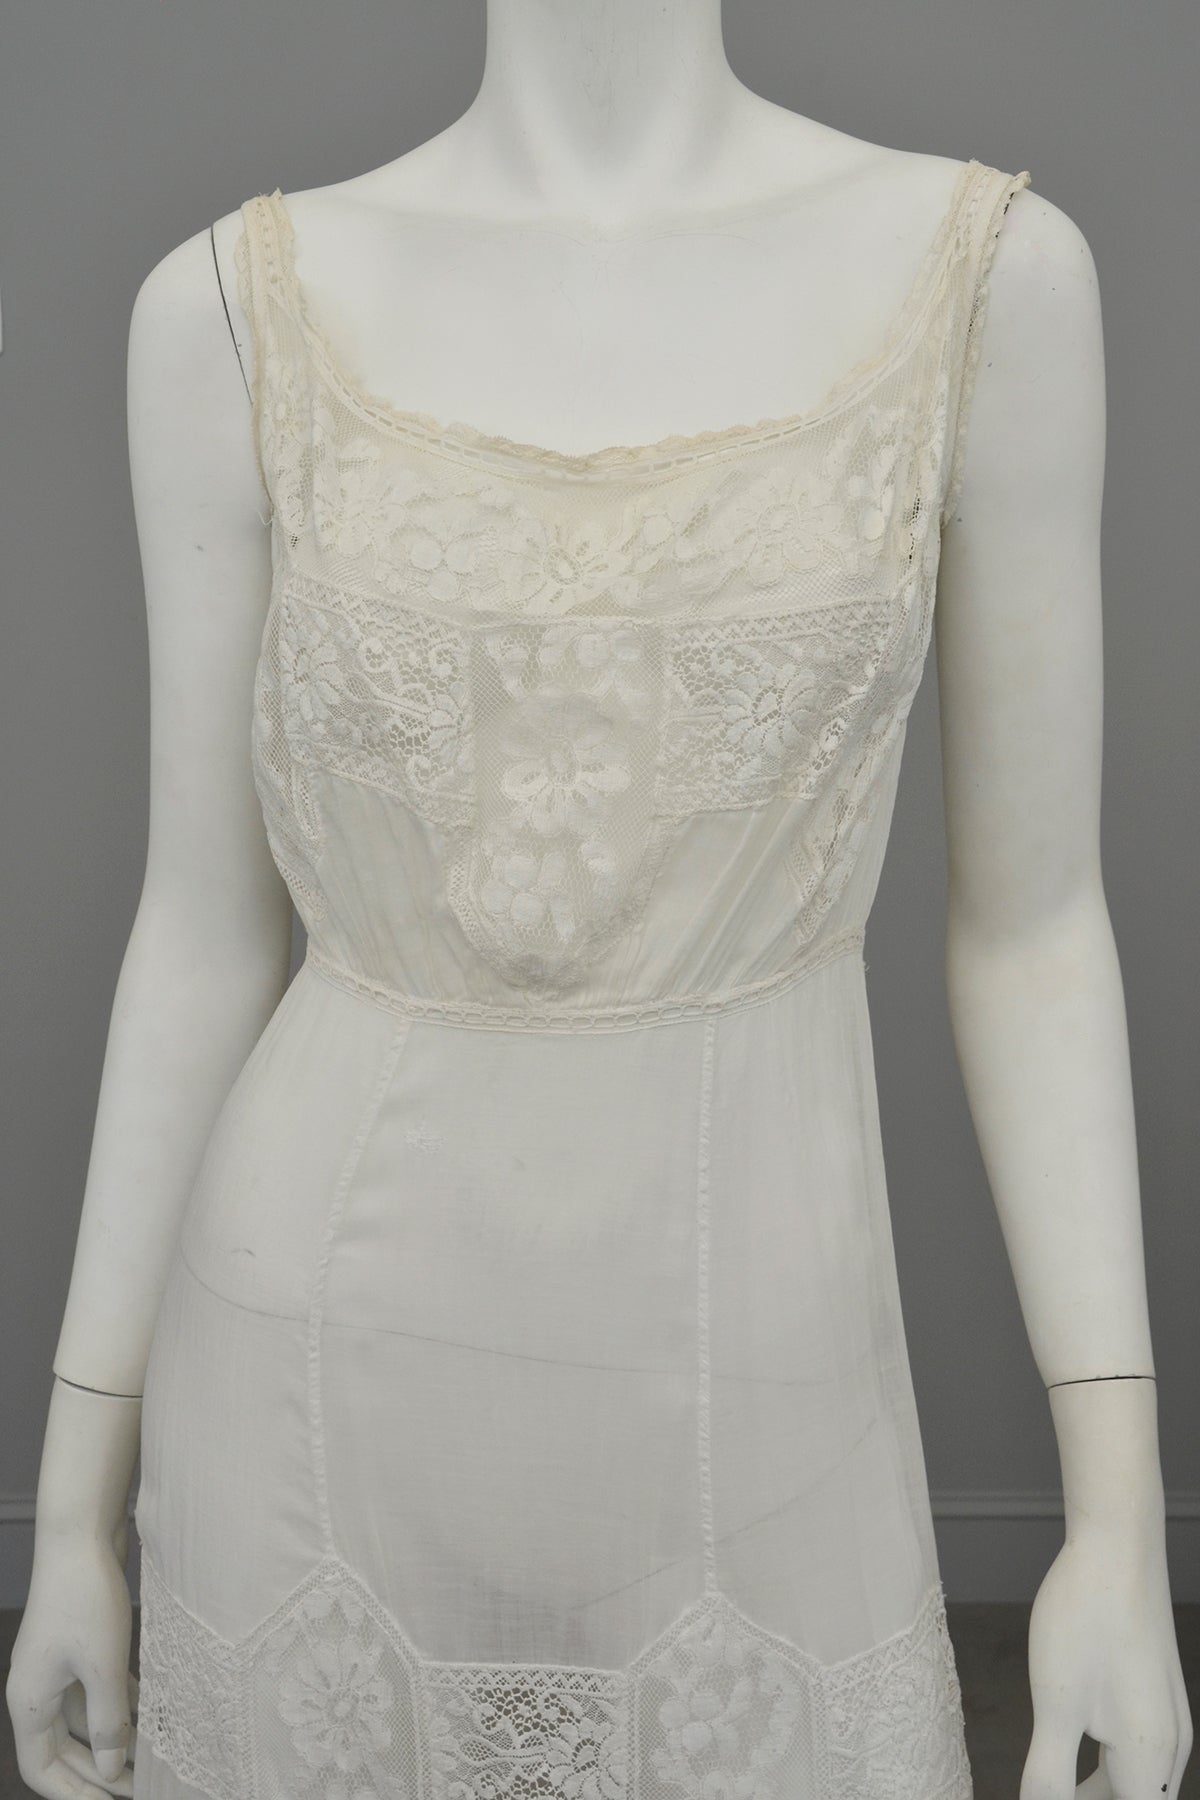 Romantic White Edwardian Lace Netting Delicate Slip Dress